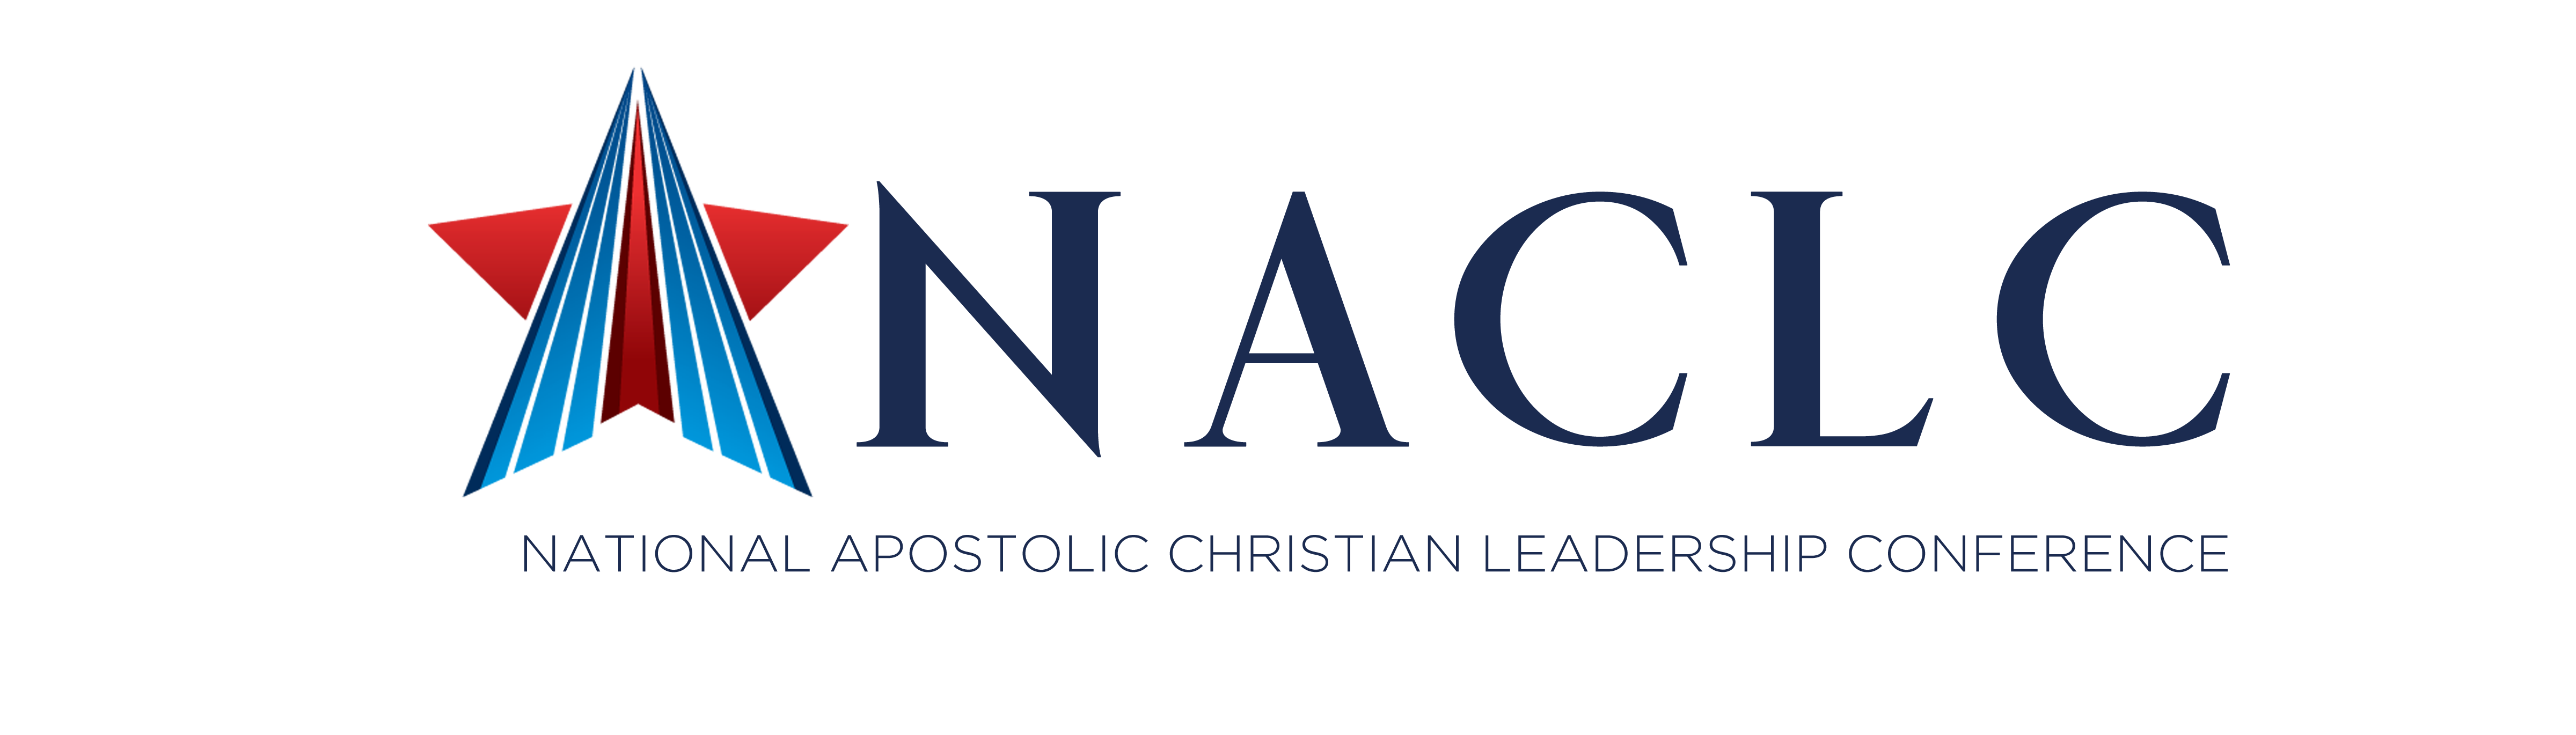 NACLC Organization Annual Membership ($3-5M)